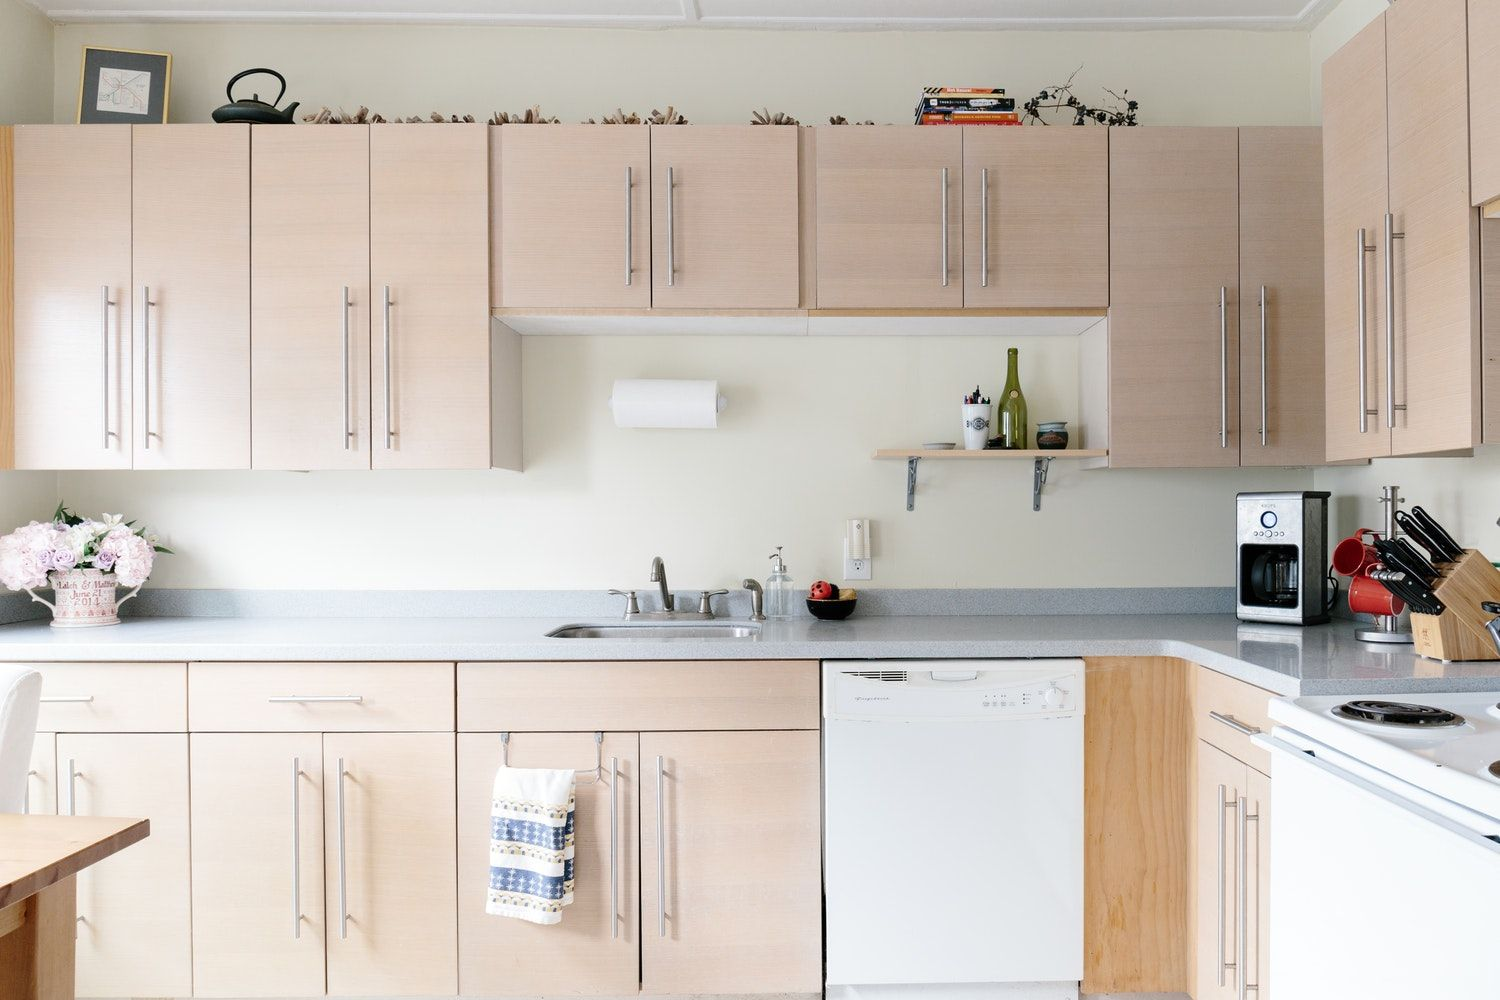 What To Clean Grease Off Kitchen Cabinets The Best Ways To Get Sticky Cooking Grease Off Cupboards